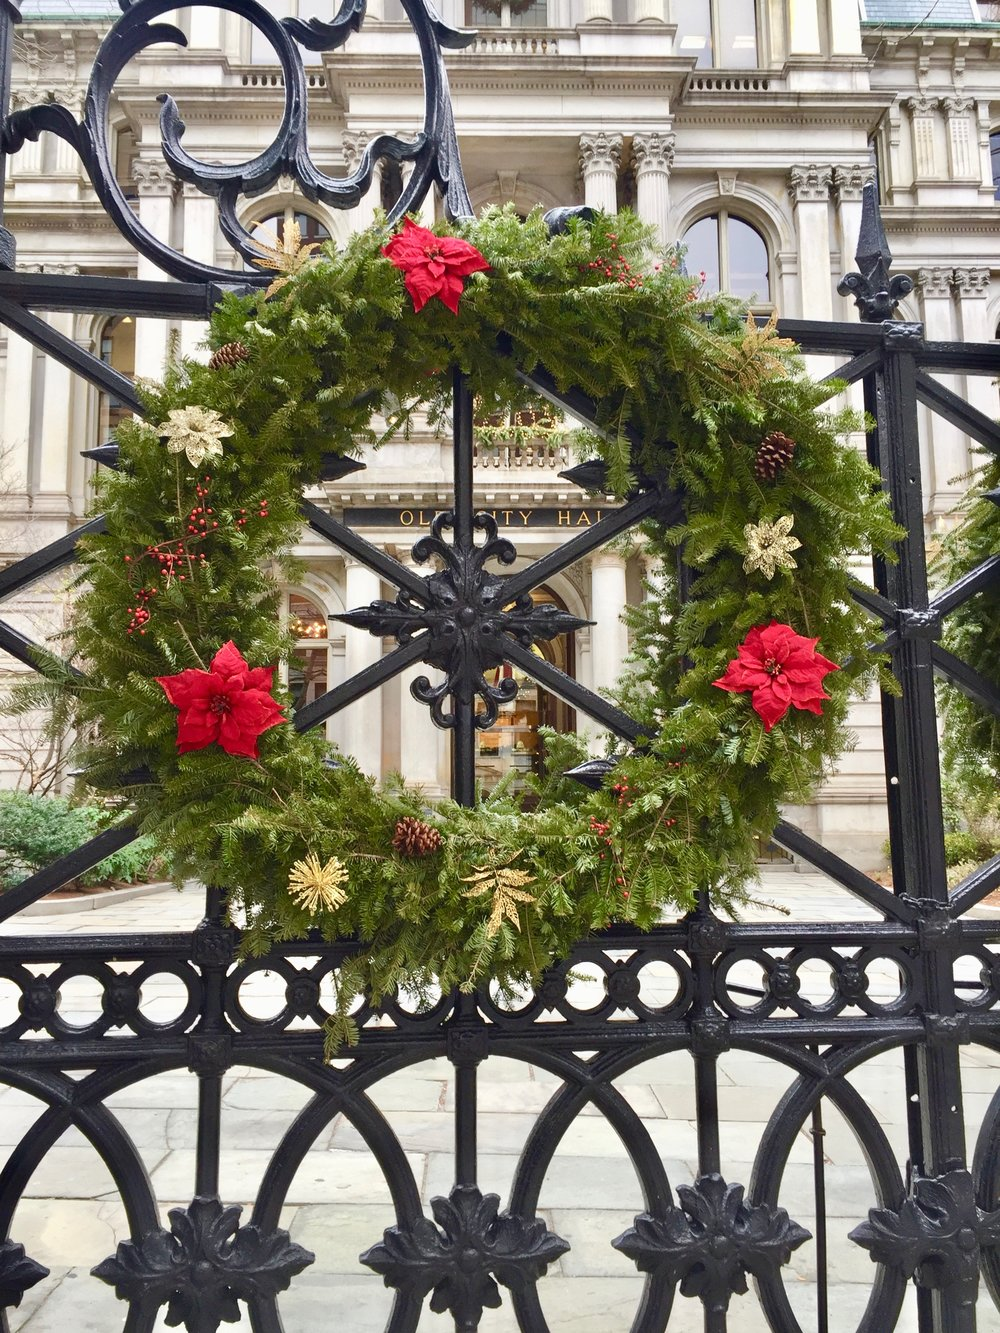 Front-Iron-Gate-Old-City-Hall-Boston-New-England-Fine-Living